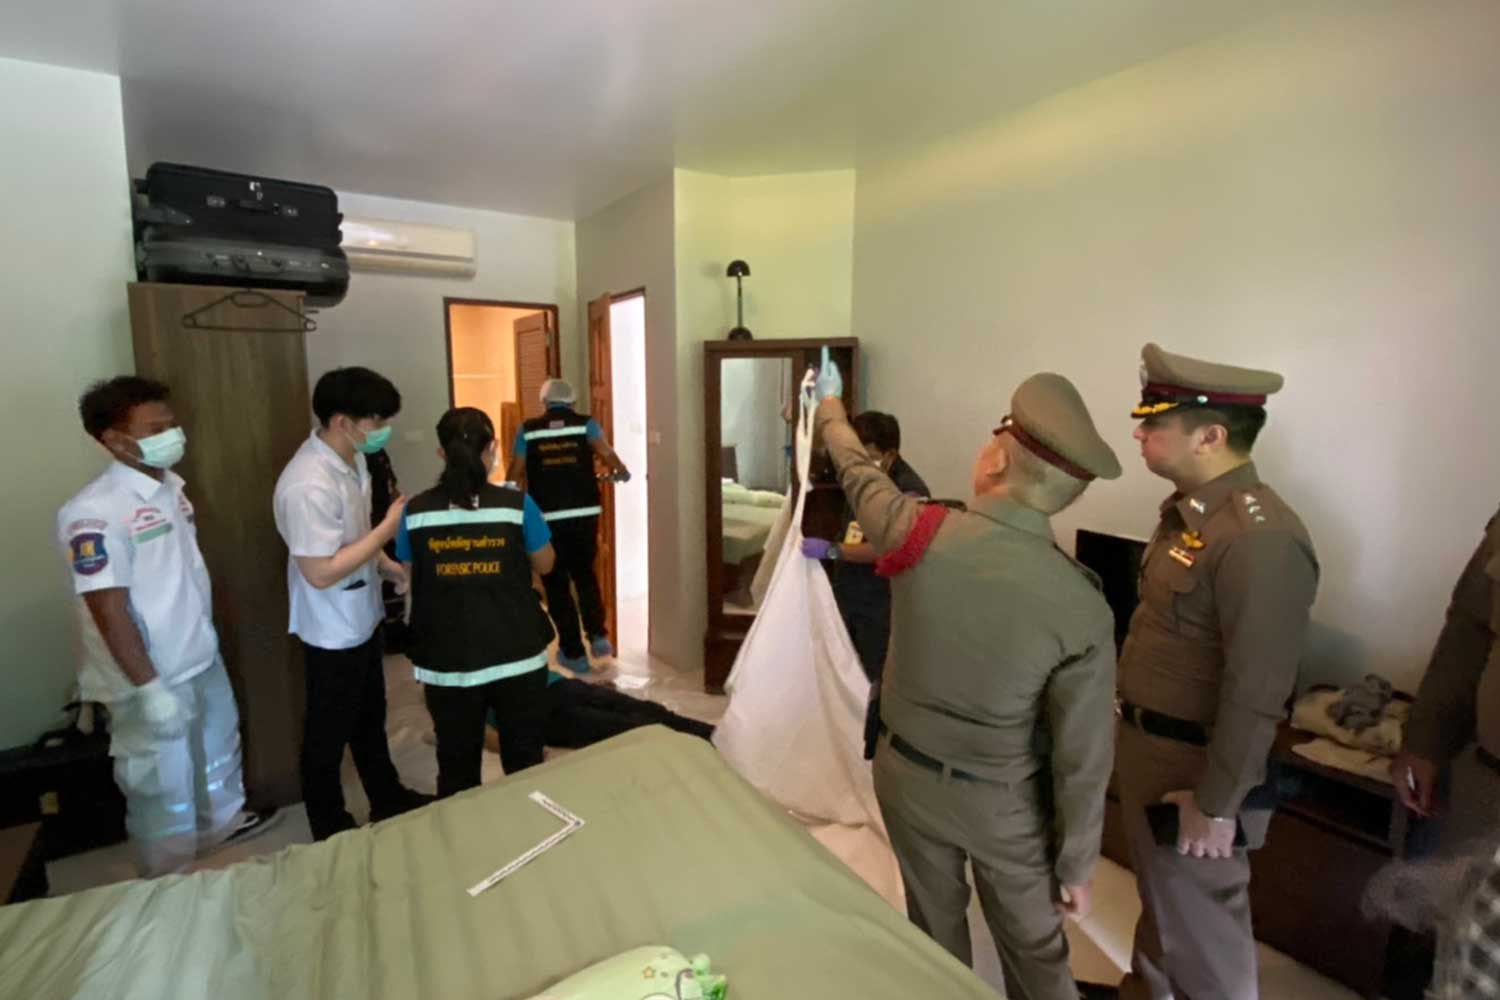 Police and forensic officers inspect a room where a 75-year-old German man was found dead with a gunshot wound in Bang Lamung on Saturday morning.